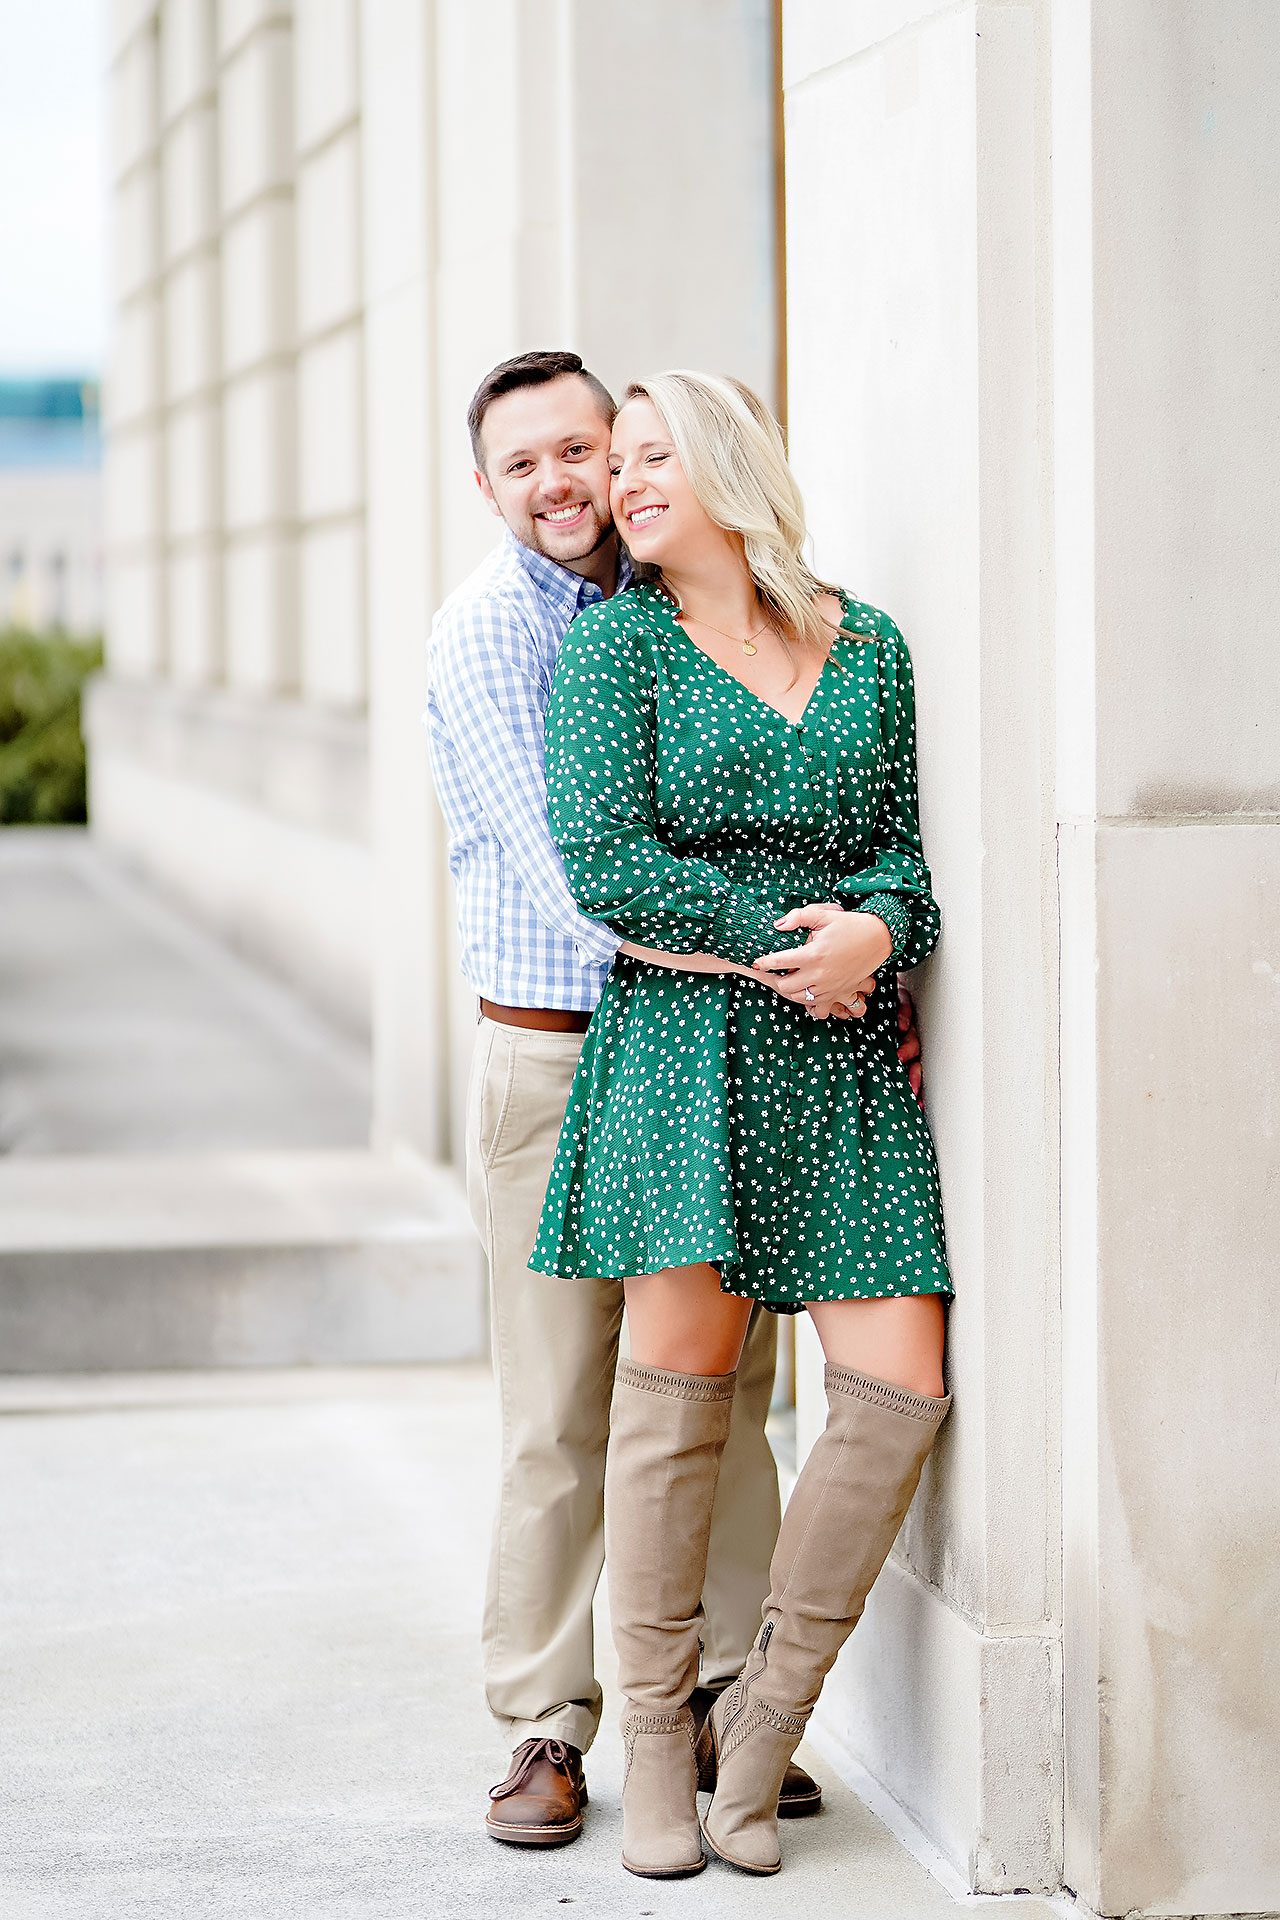 Kristen Jonny Indianapolis Downtown Engagement Session 049